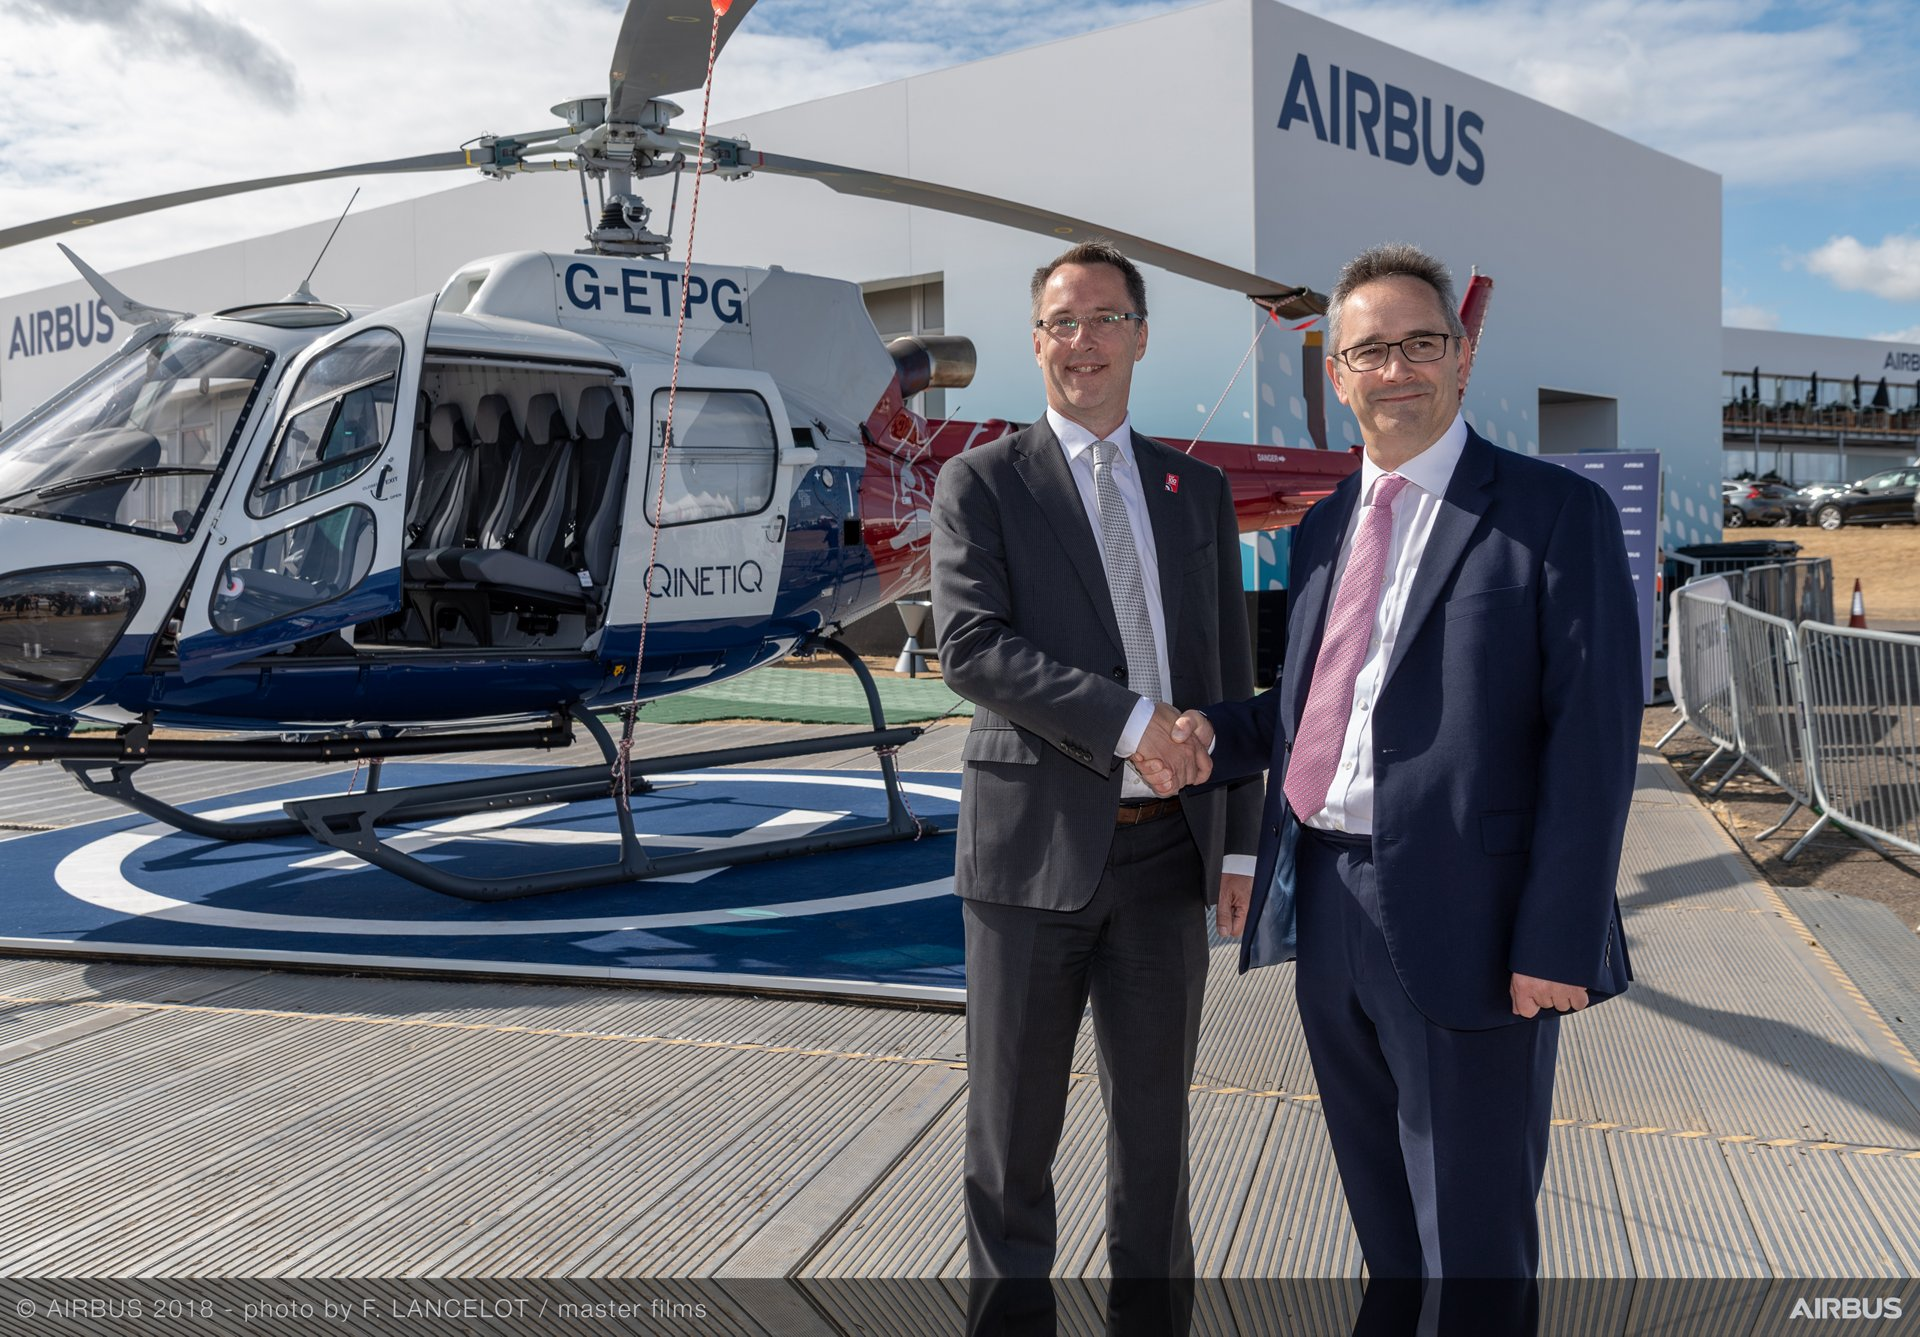 H125 helicopter Farnborough handover QinetiQ ETPS 1